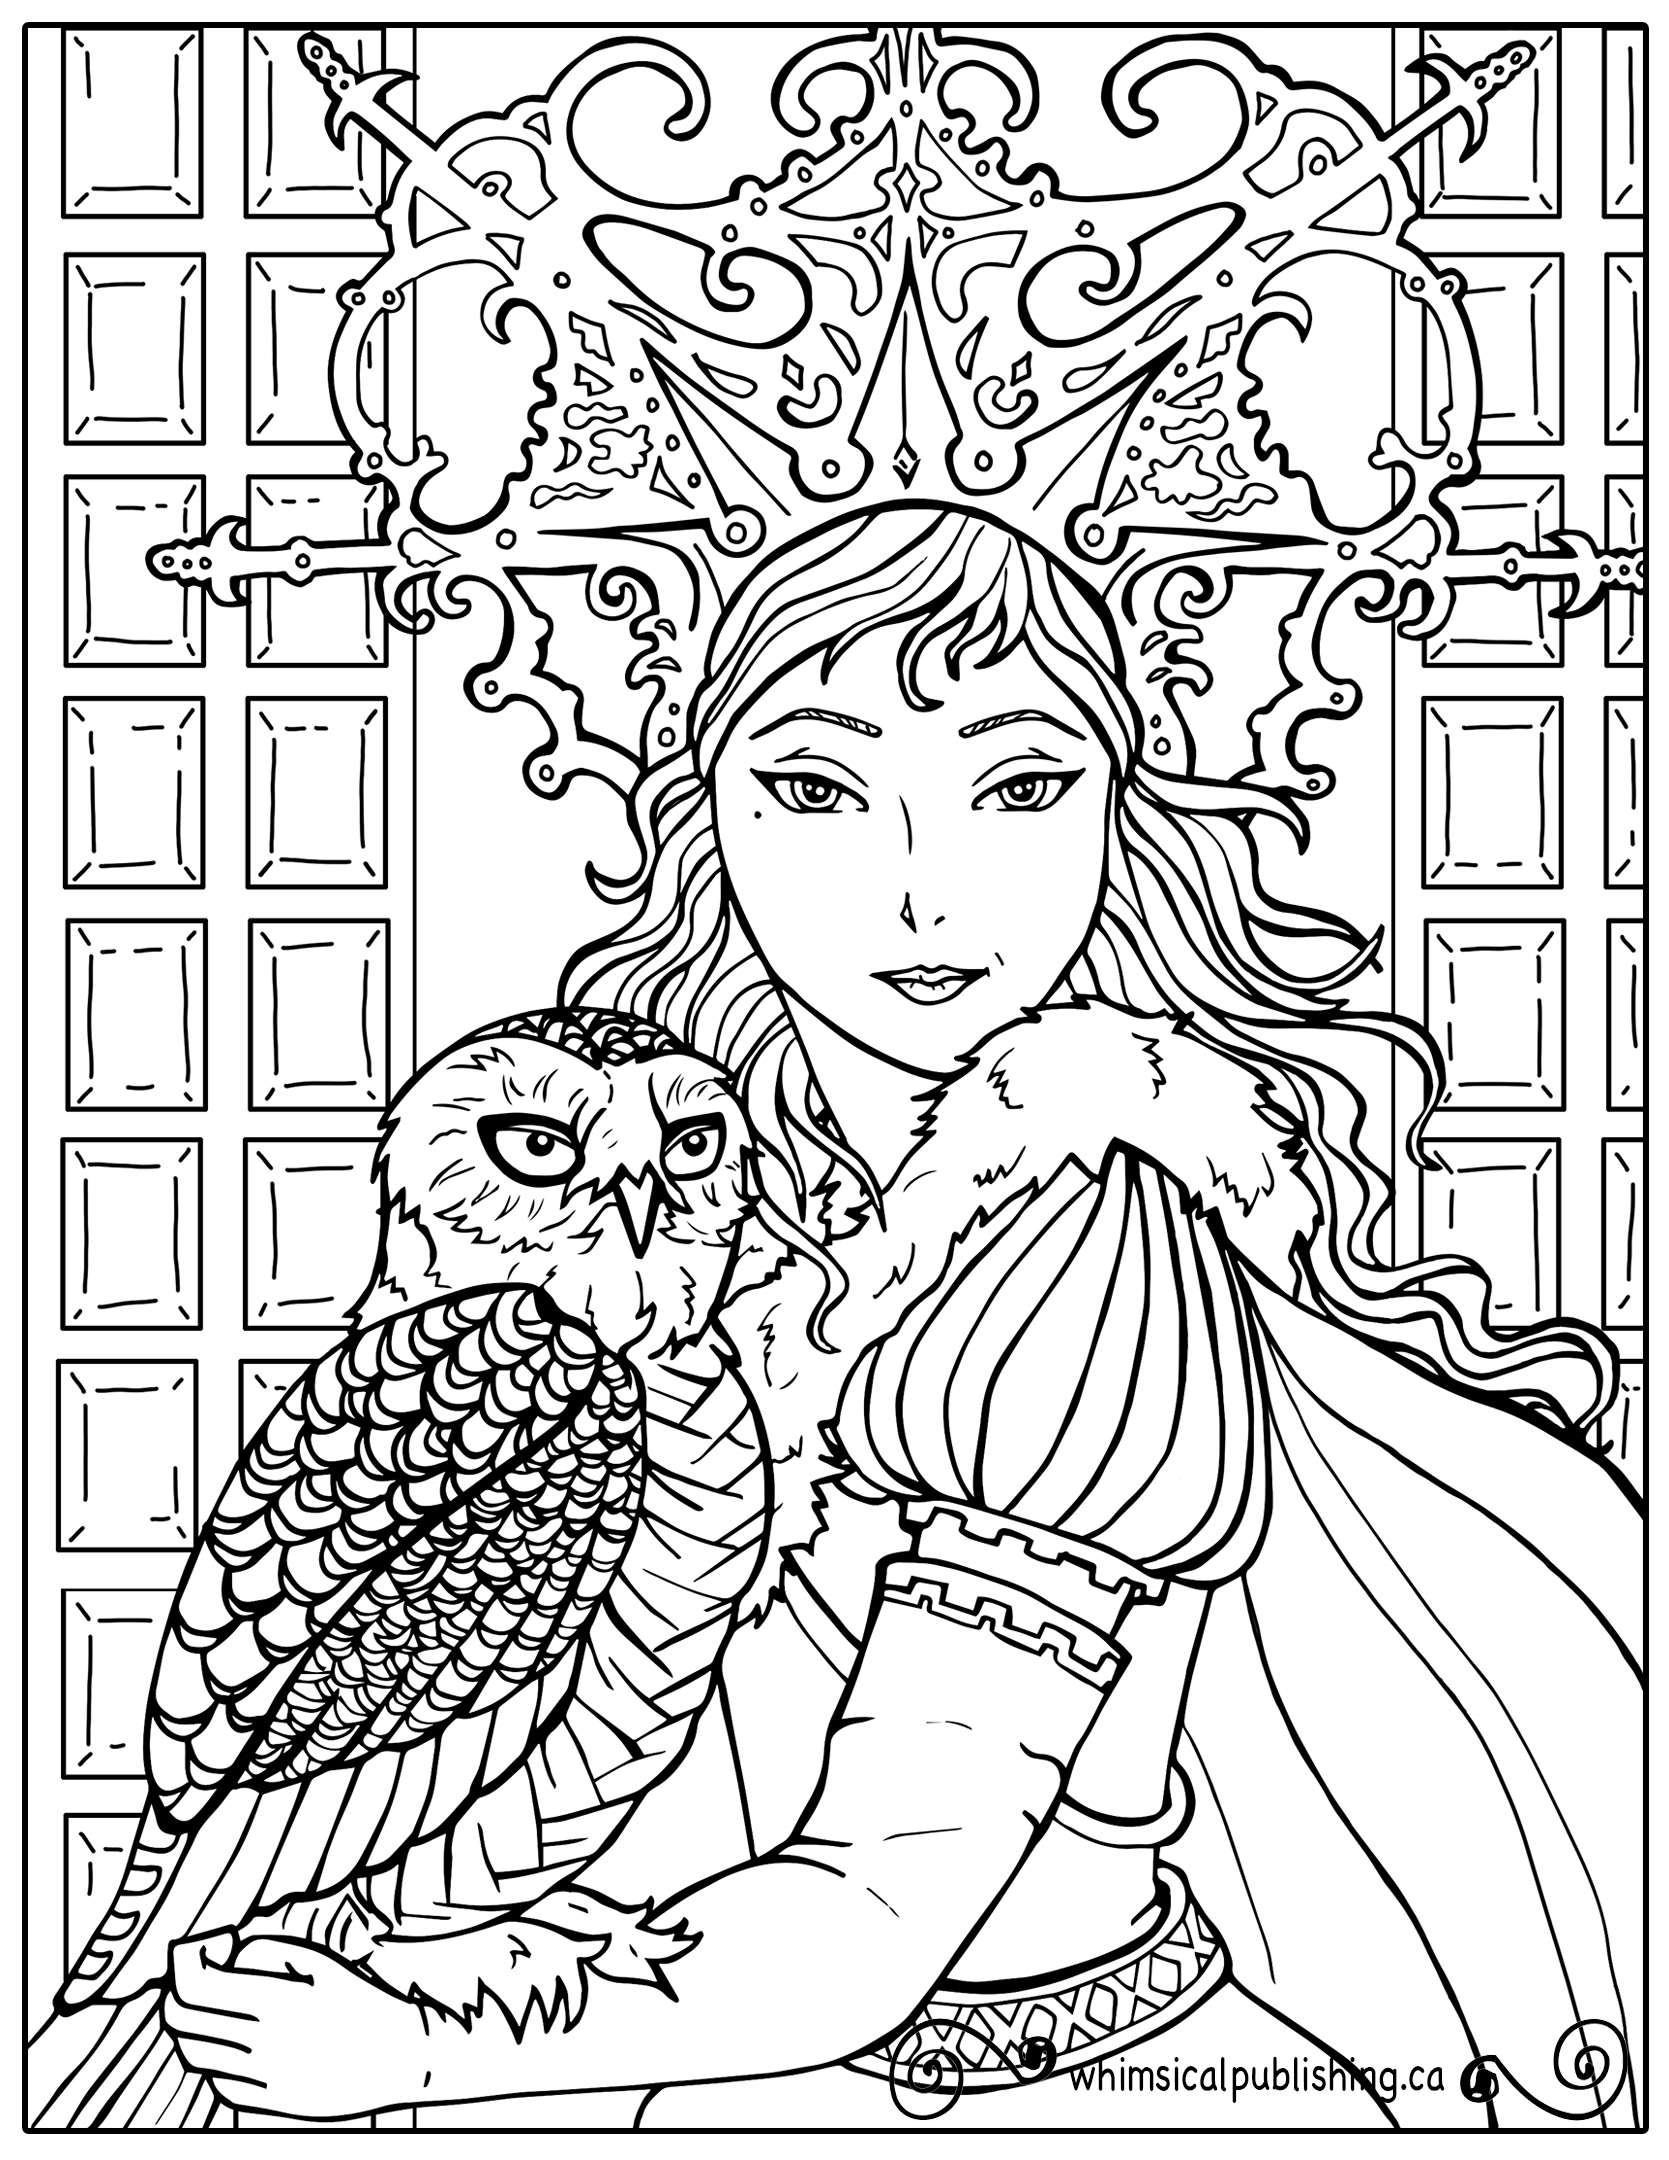 coloring pages online for adults flower coloring pages for adults best coloring pages for online for coloring pages adults